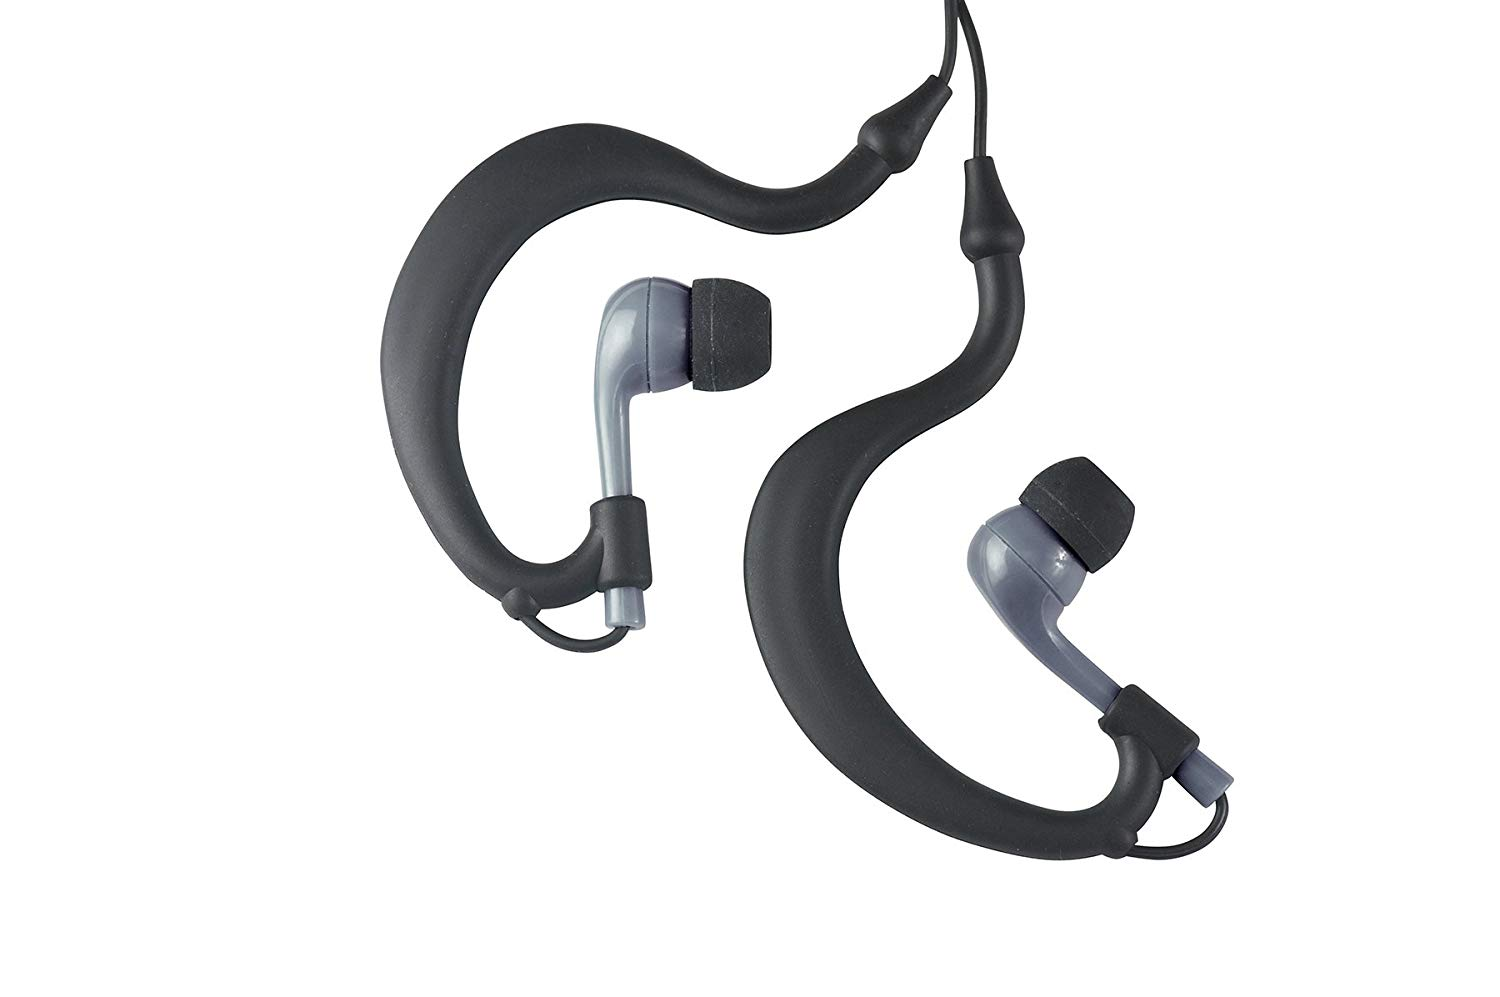 UWATER Triple-Axis Waterproof Action Earphones (Black and Grey)